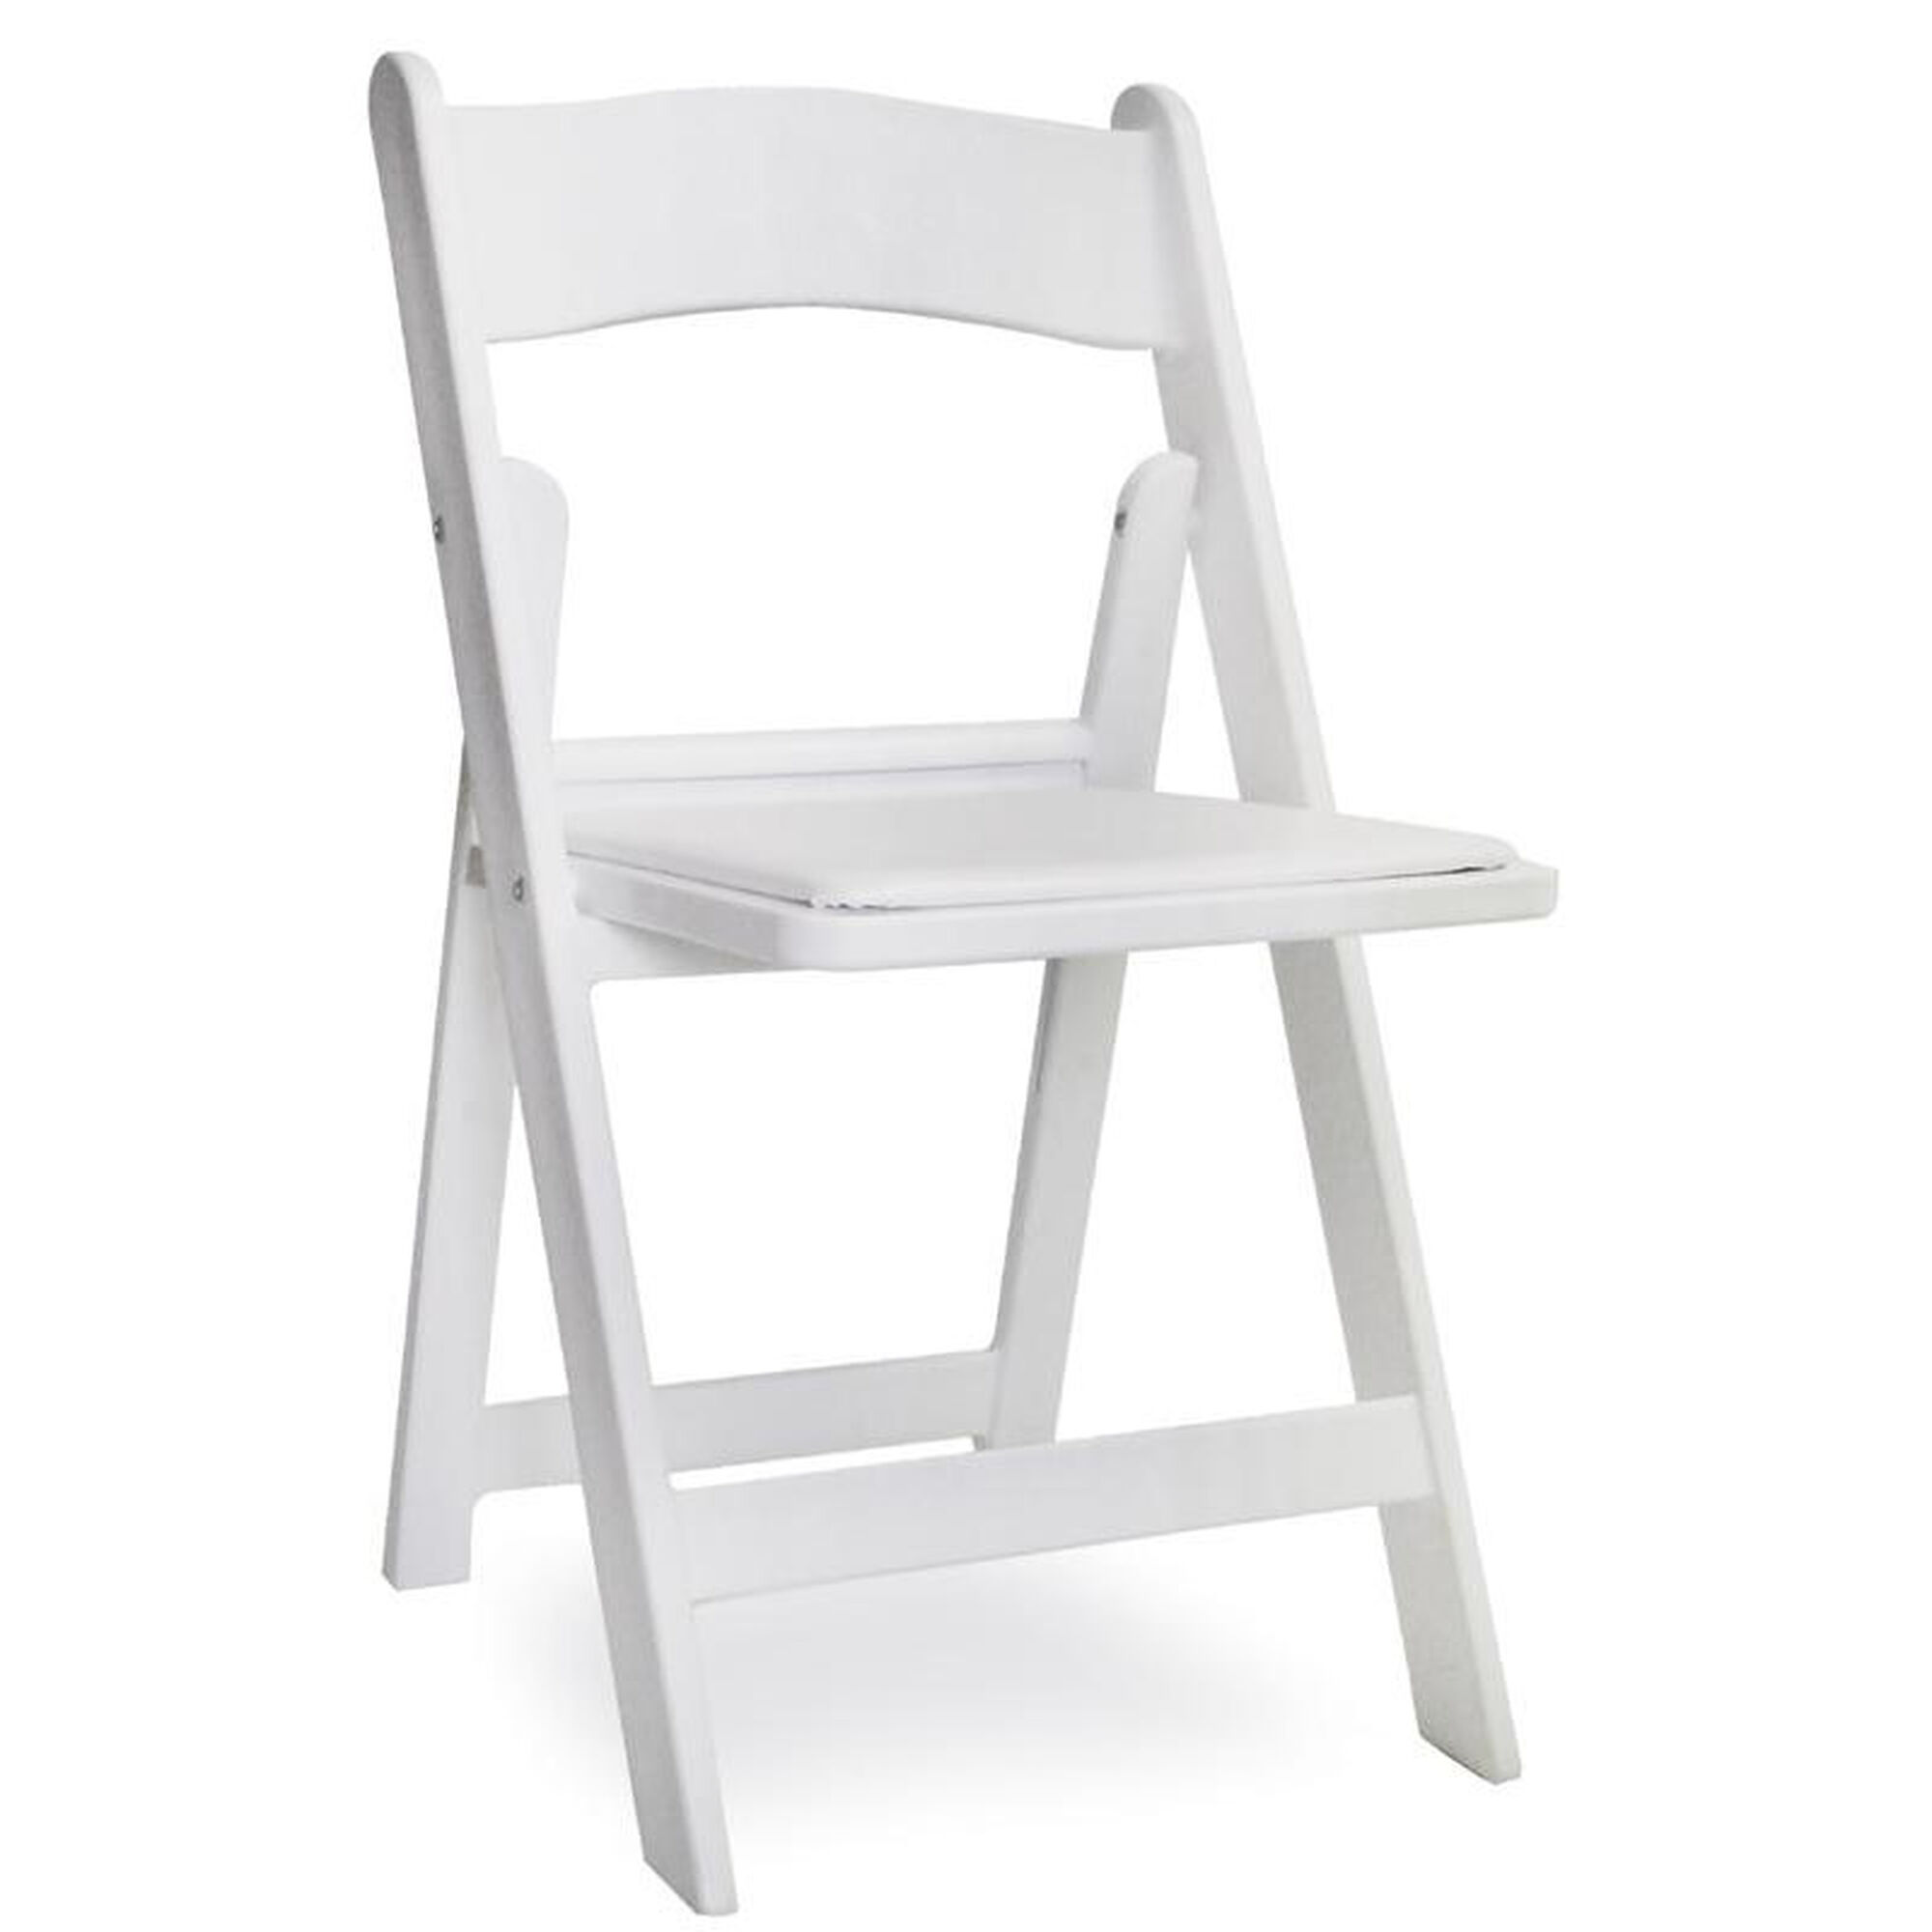 Brilliant Gala Resin Steel Reinforced Stackable Folding Chair With Padded Seat White Squirreltailoven Fun Painted Chair Ideas Images Squirreltailovenorg